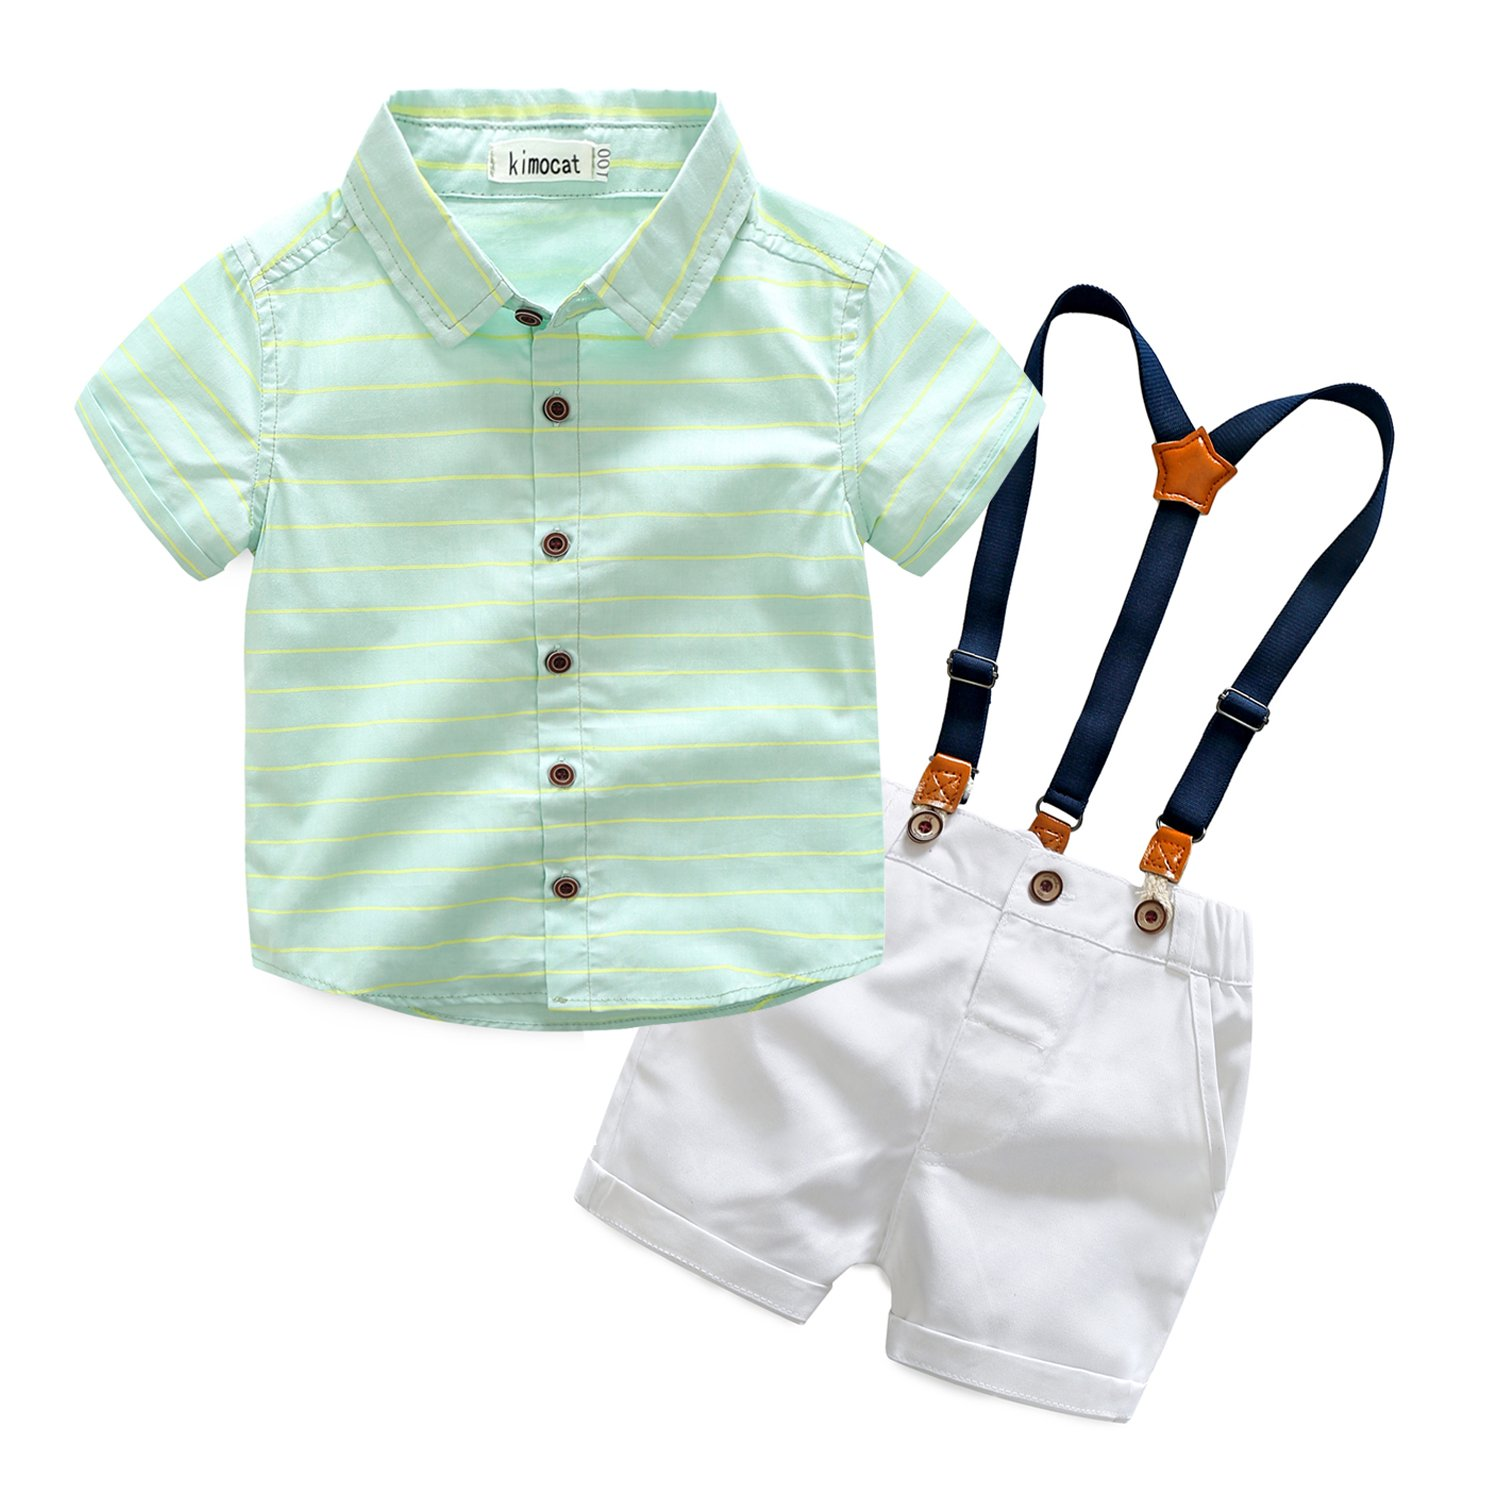 Kimocat Gentleman Suspender Outfits Suit for Toddler Boys 2Pcs Woven Shirt and Shorts with Straps (3T)